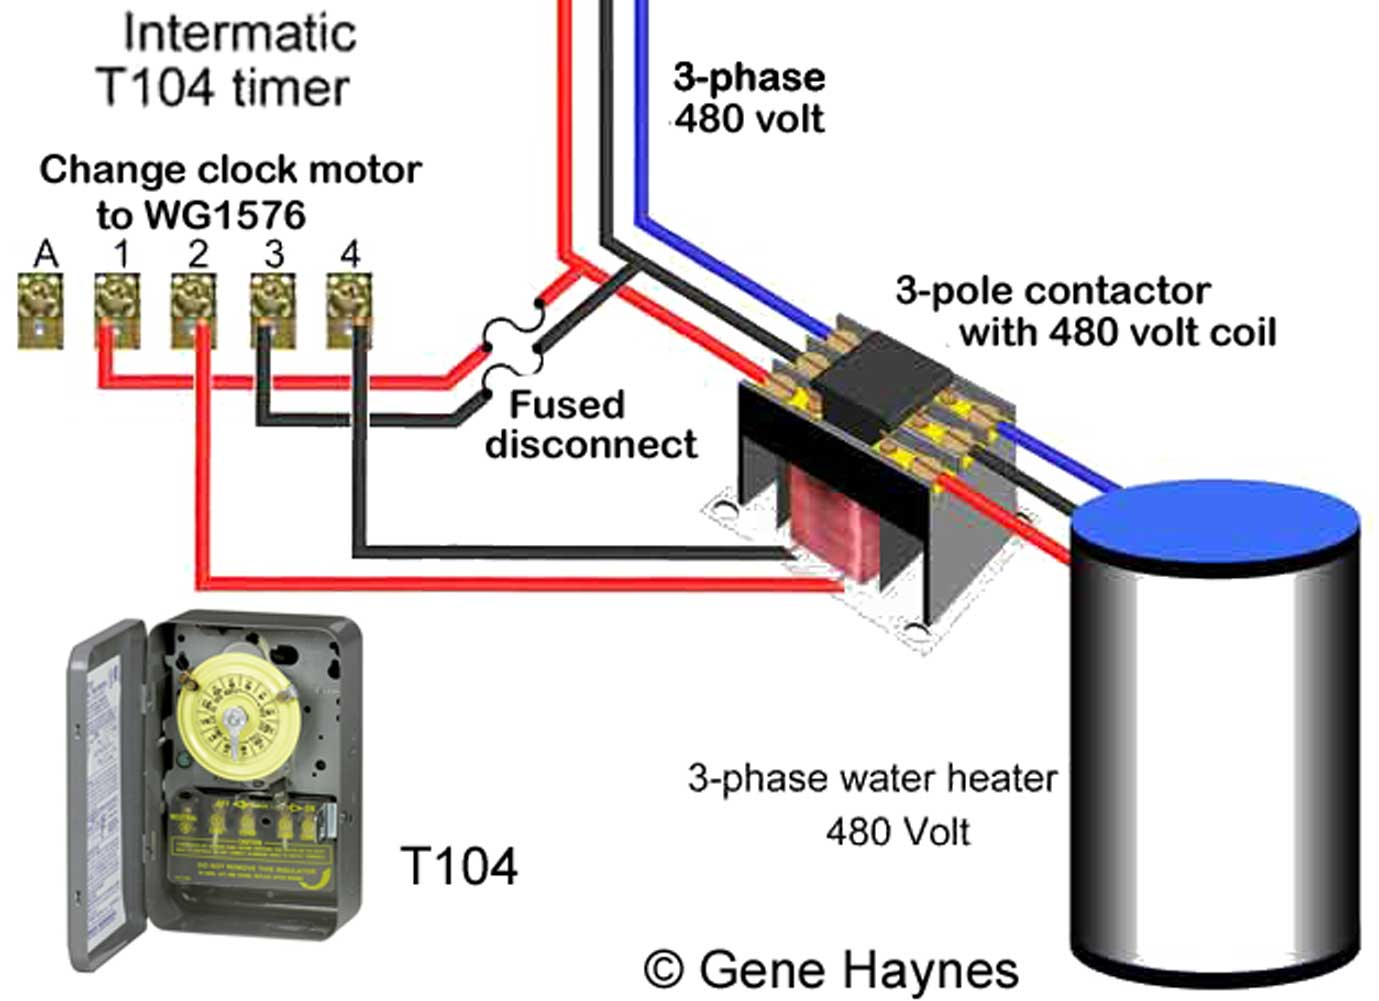 How To Wire Intermatic T104 And T103 T101 Timers Wiring Diagram Additionally 3 Phase On 4 Way Switch Control 480 V Using Timer Change 240v Wg1573 Clock Motor Wg1576